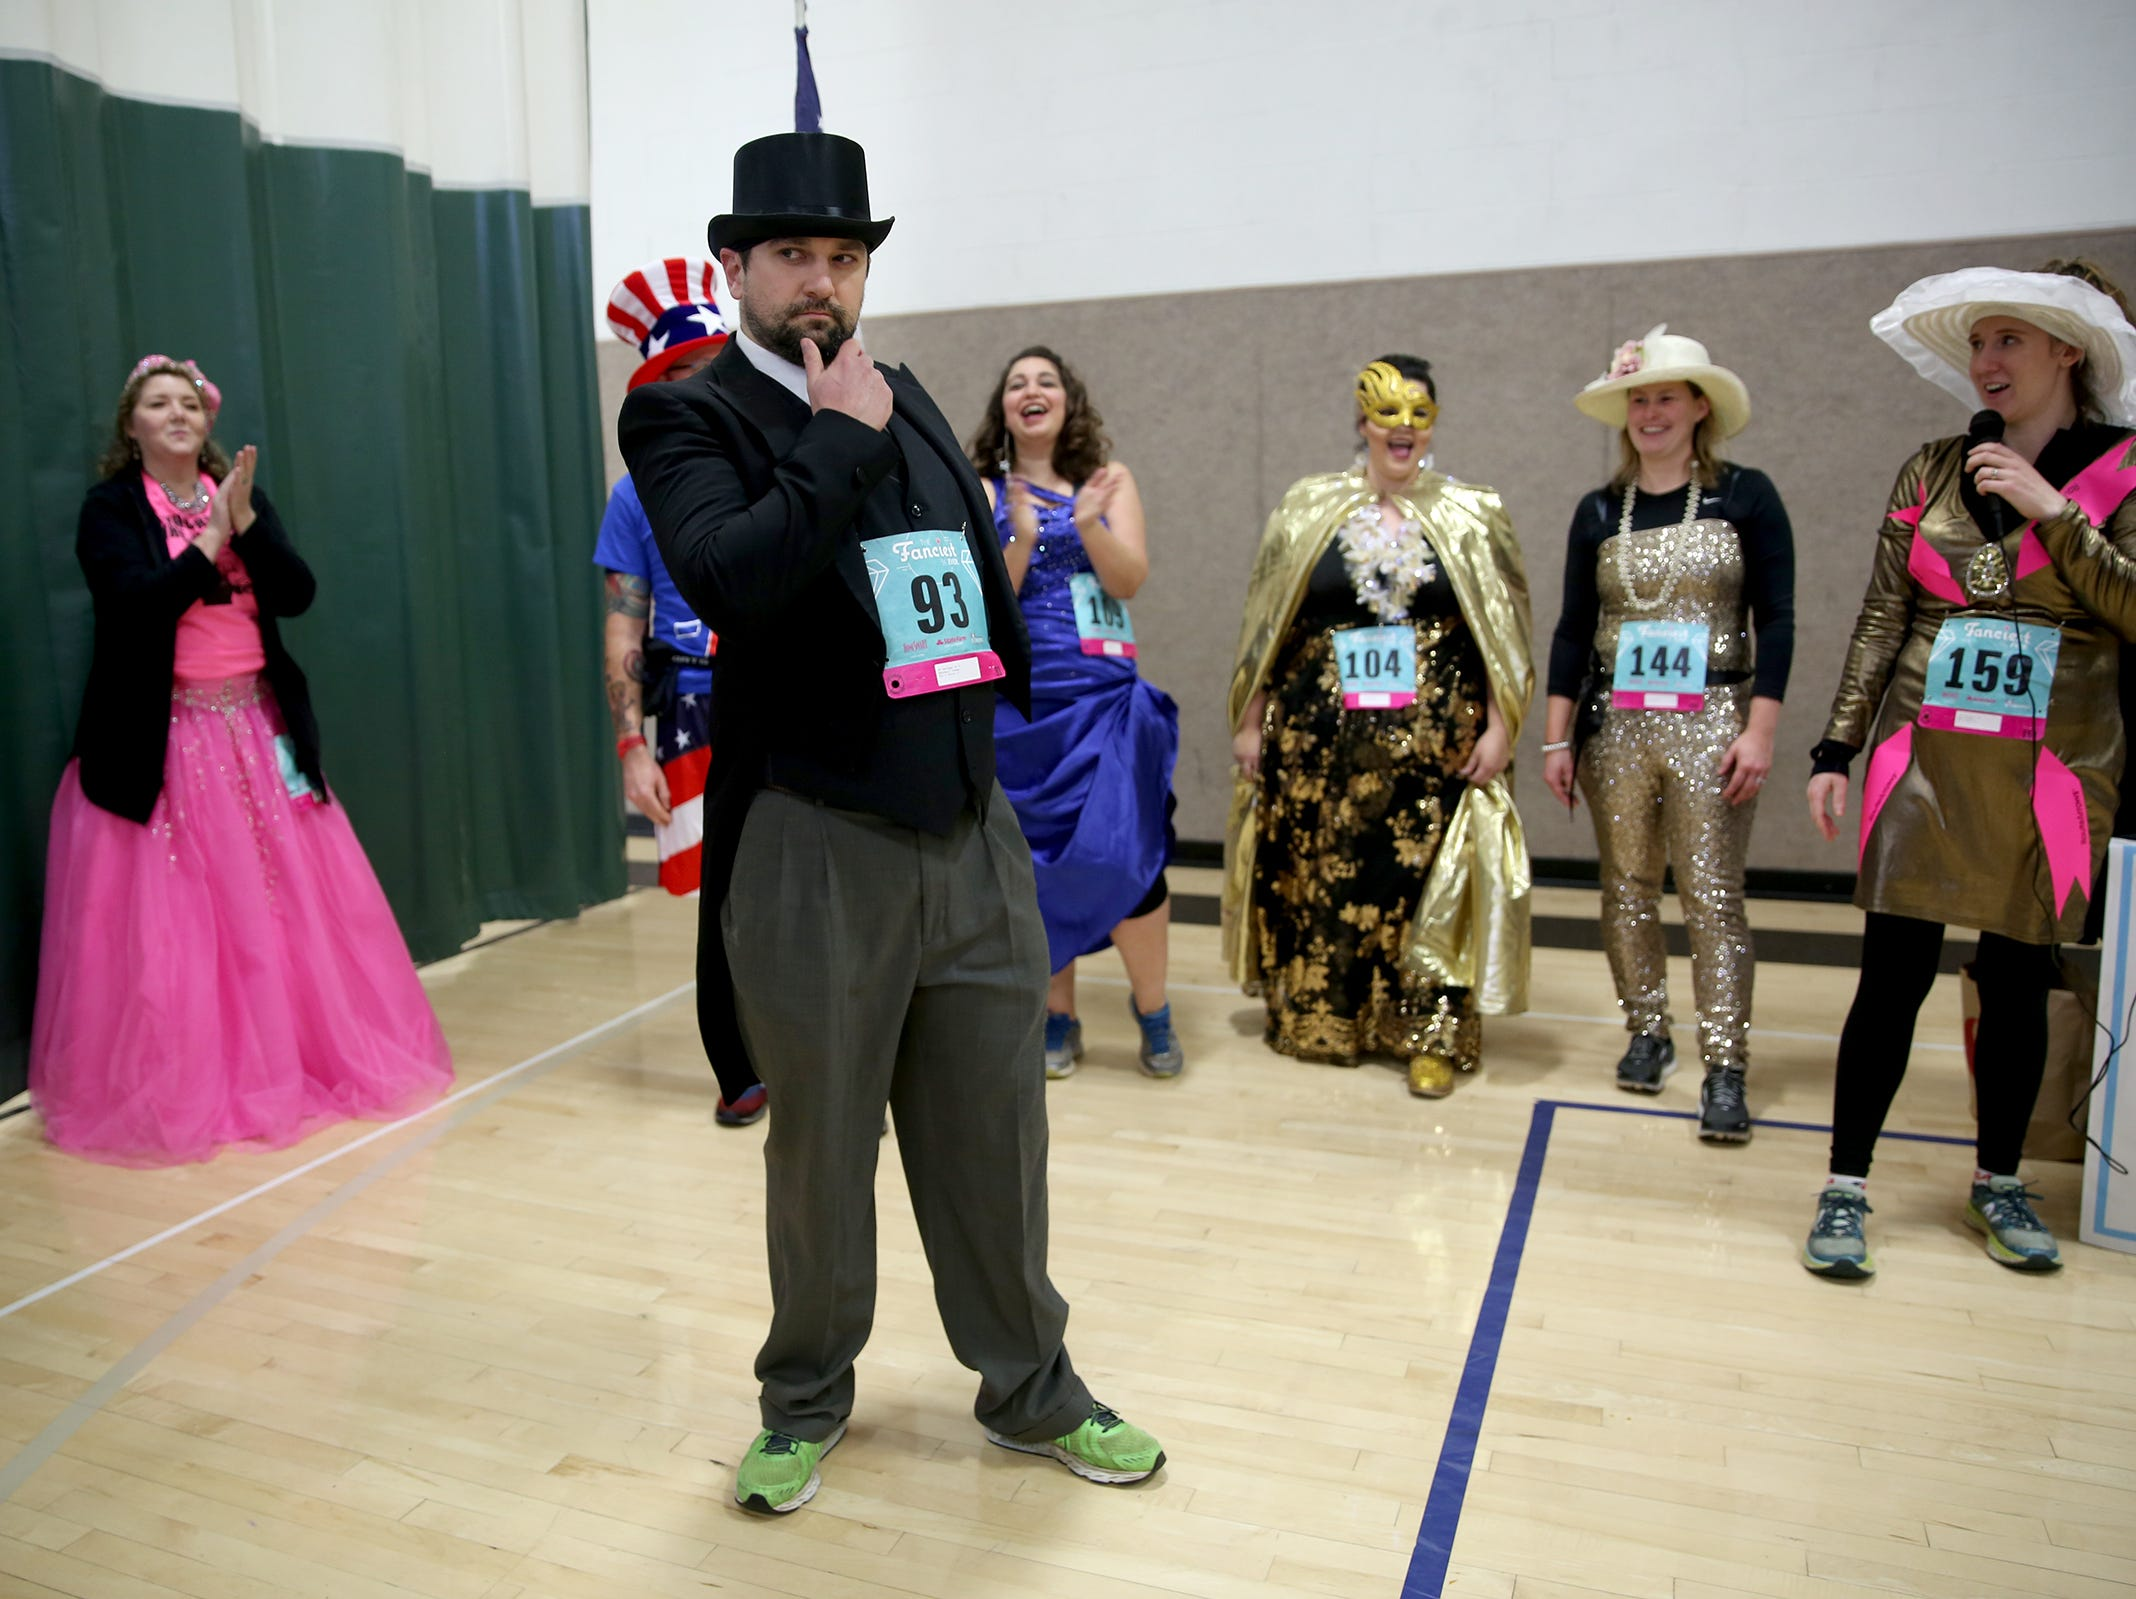 Joshua Marshall strikes a pose before being named best dressed man at The Fanciest 5K. Ever. in Salem on Saturday, Dec. 29. All of the money raised will go directly to advocacy for sex-trafficking survivors in the mid-Willamette Valley.